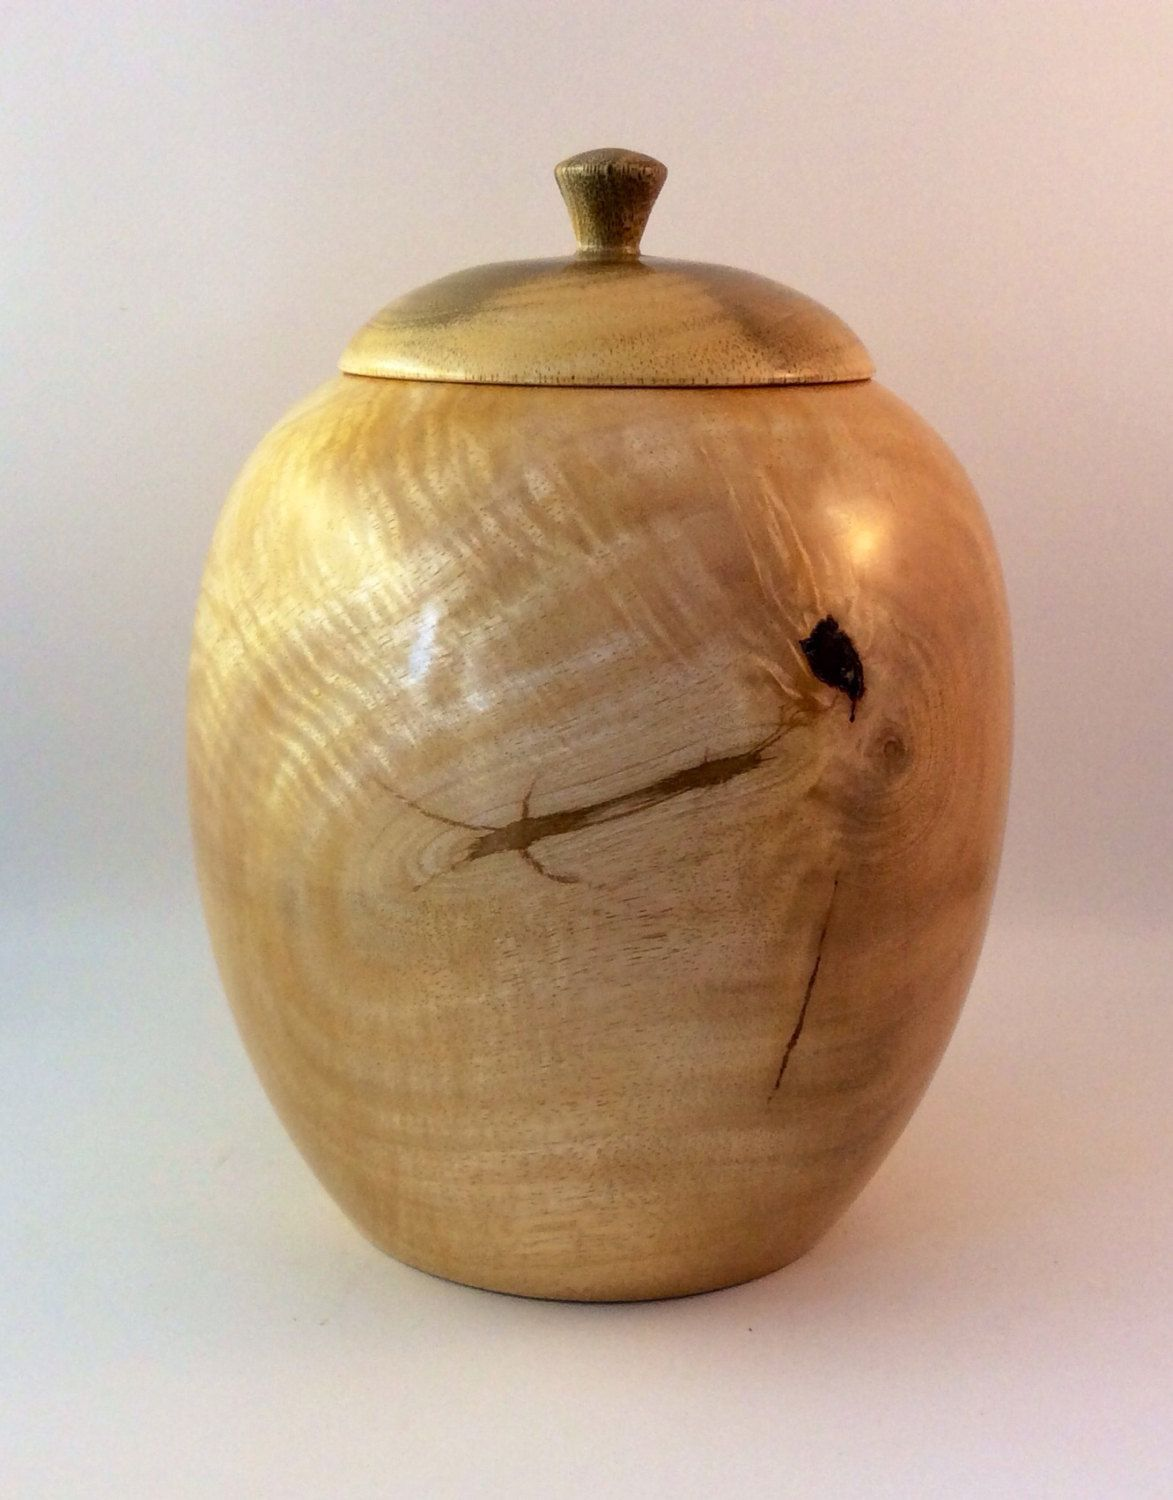 Wooden Cremation Urn, stunning piece crafted from